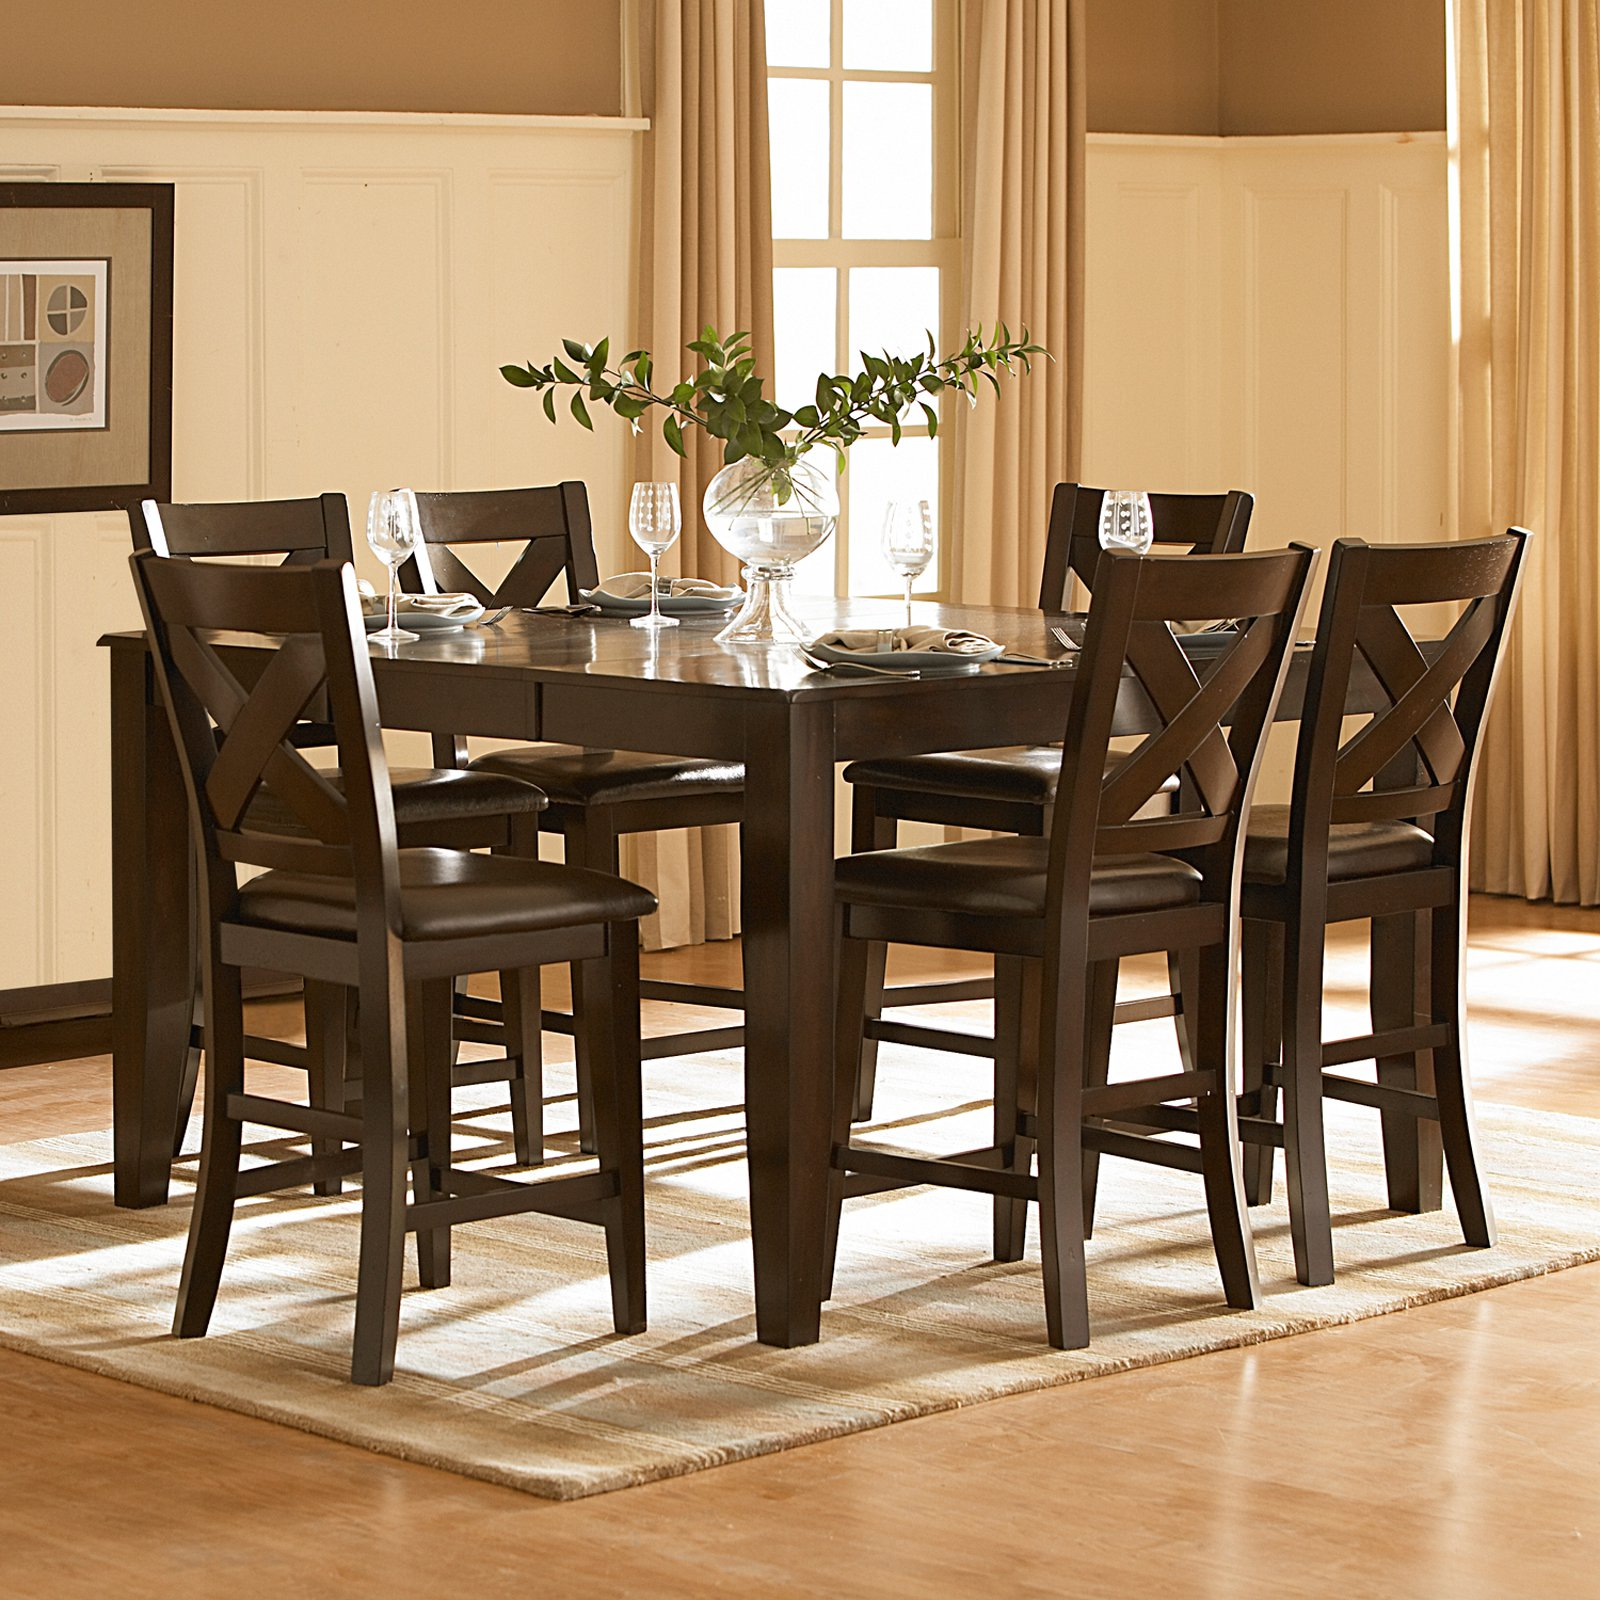 Homelegance Crown Point 7 Piece Counter Height Dining Set   Walmart.com